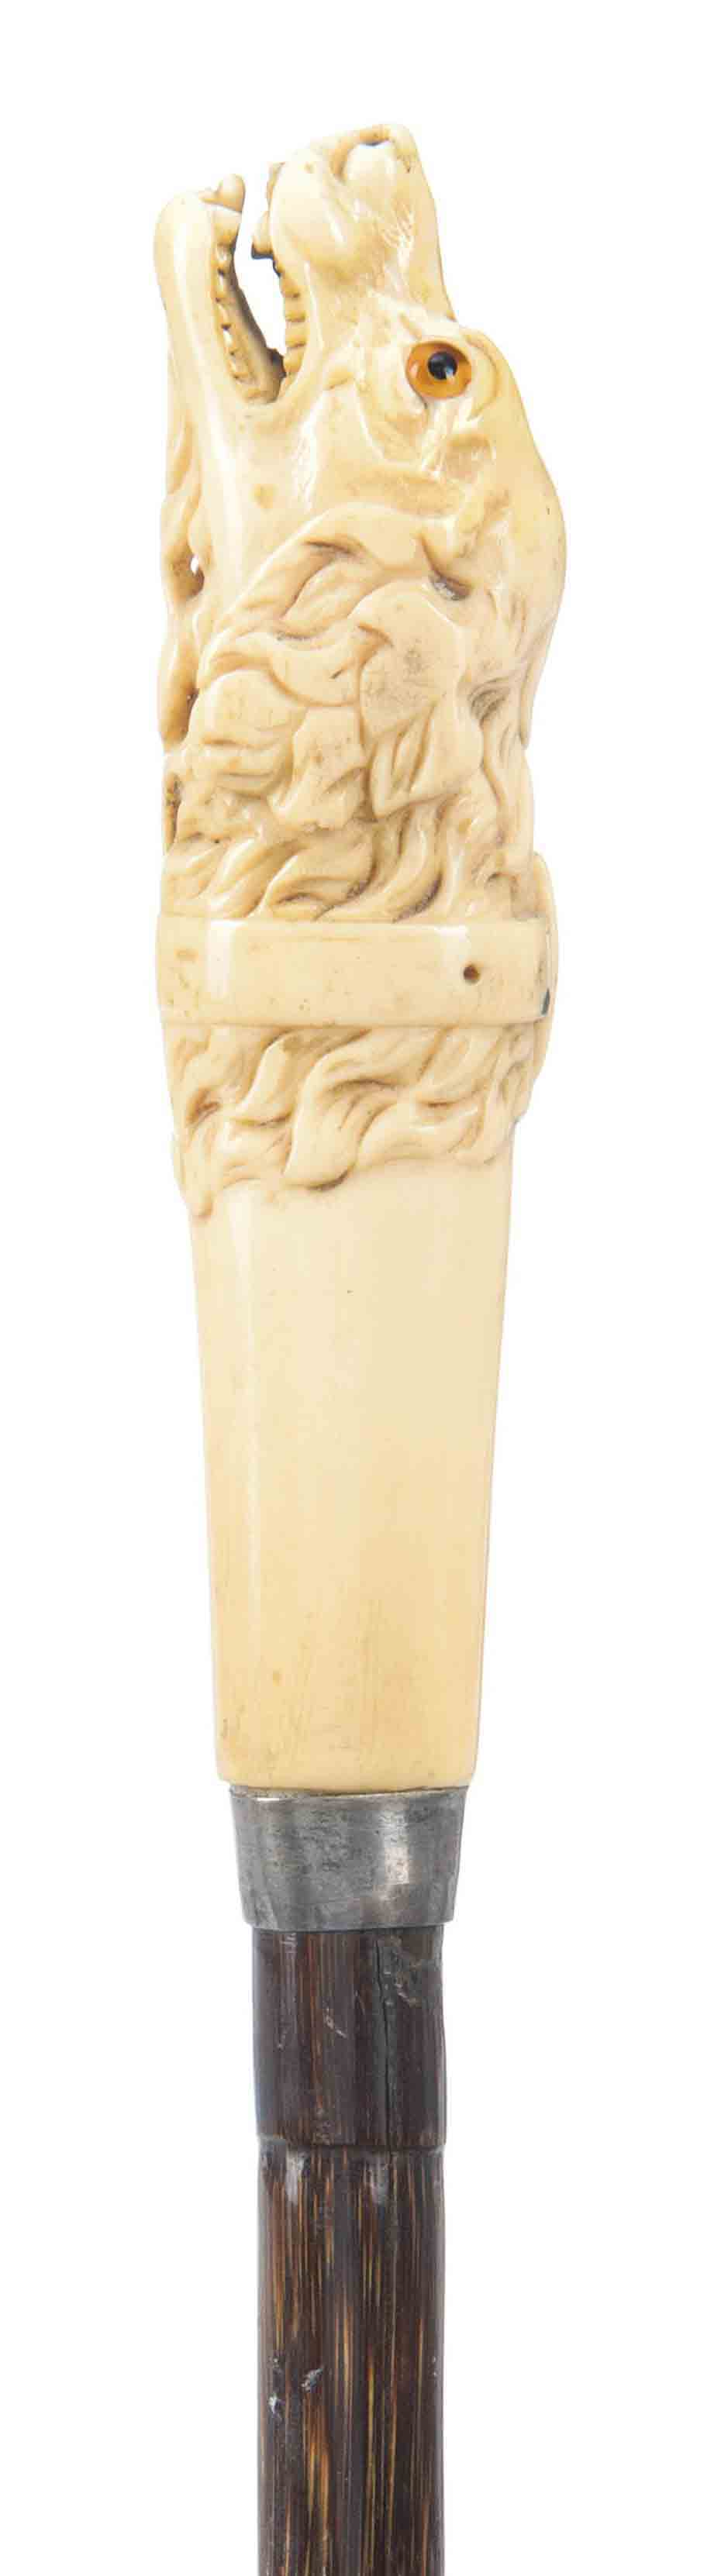 AN LATE VICTORIAN IVORY-HANDLE